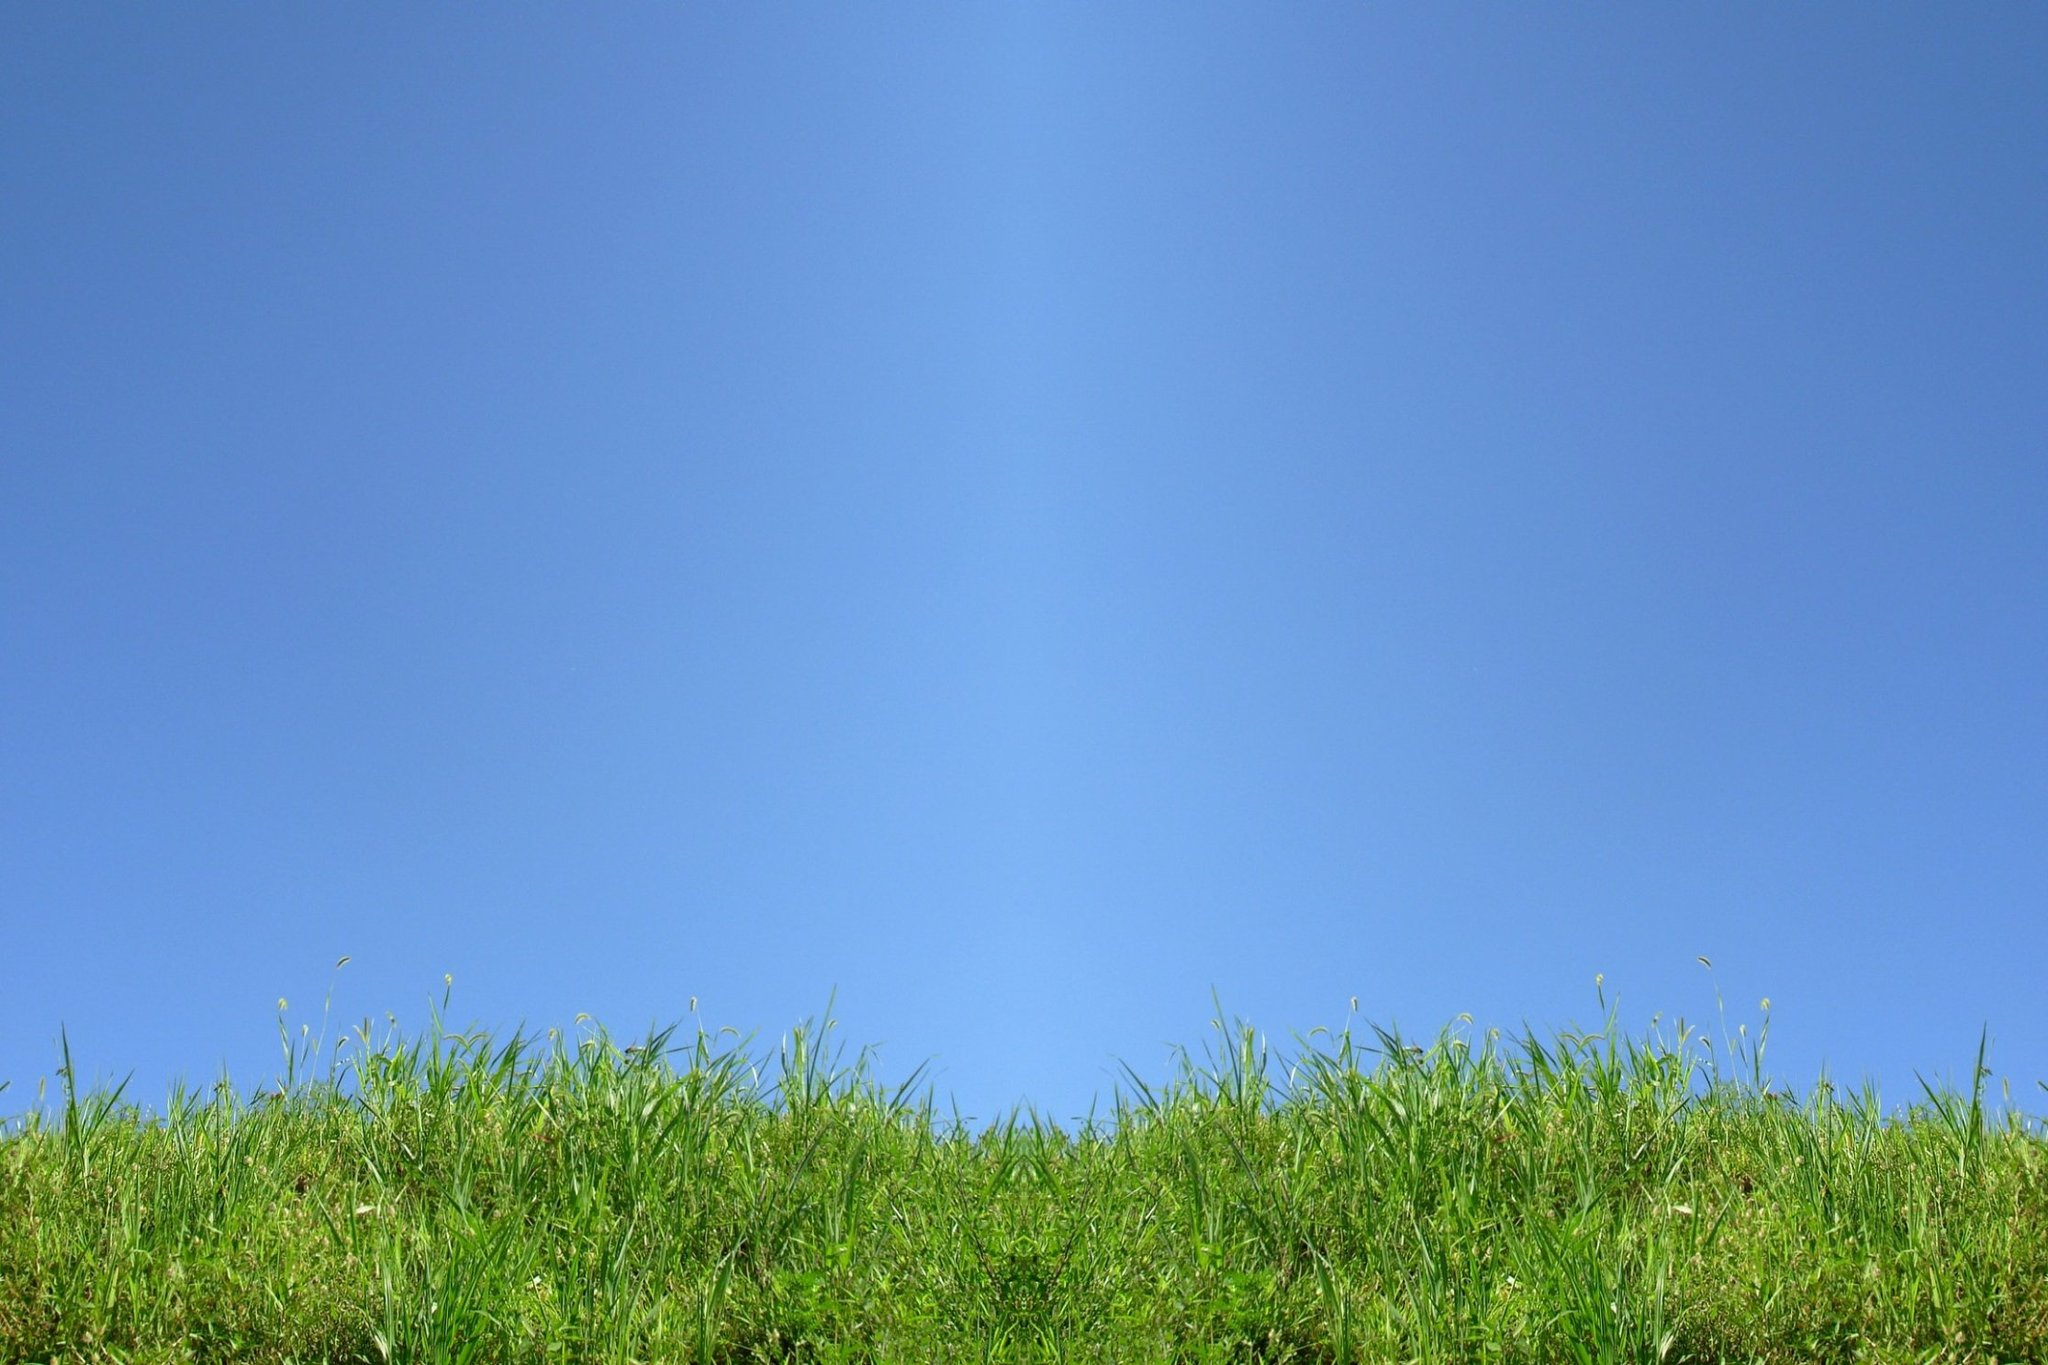 grass wallpaper green blue